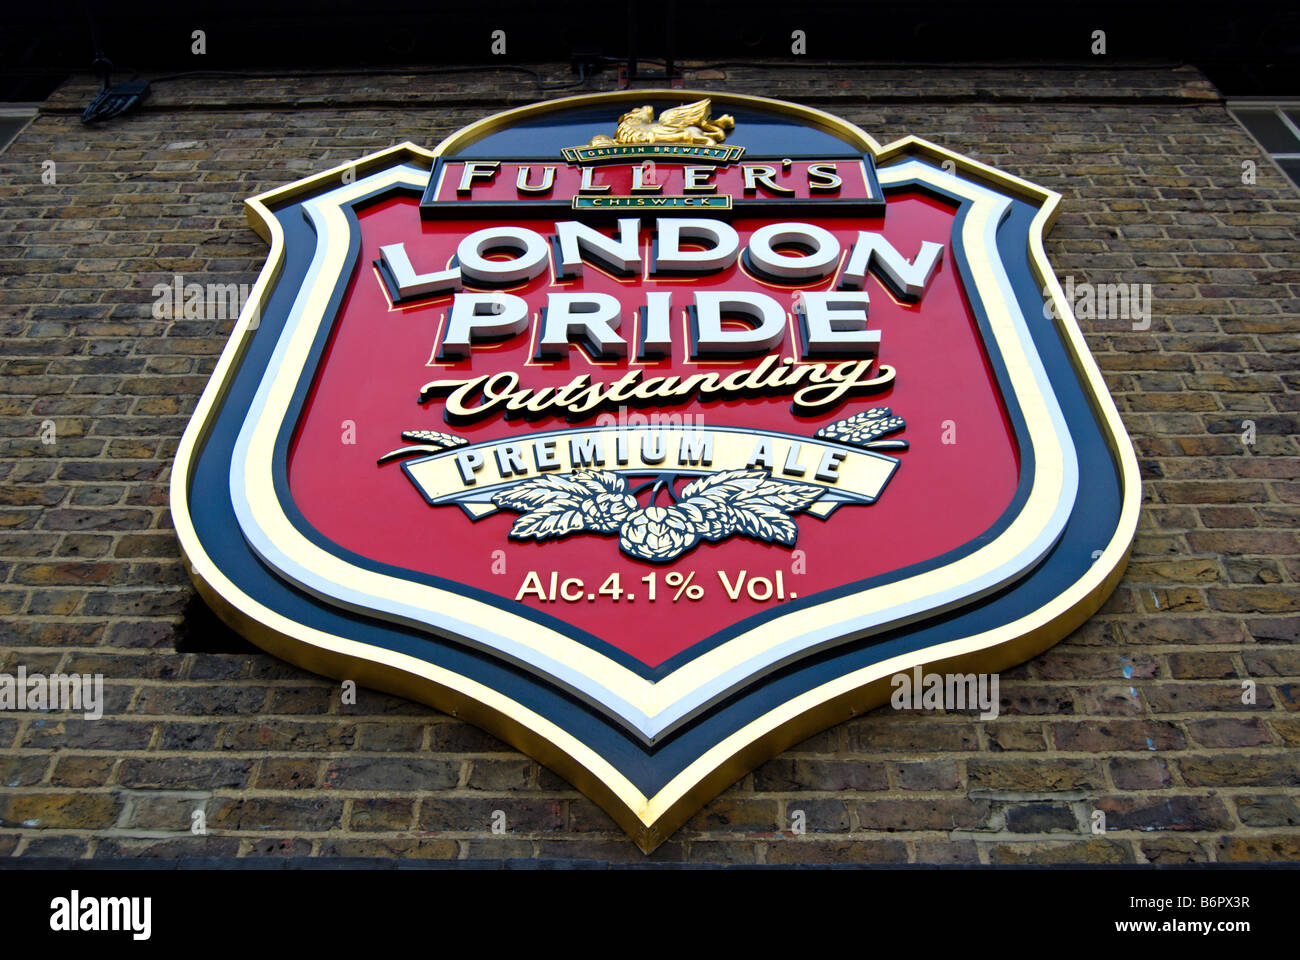 london pride logo on the wall of fuller's griffin brewery, chiswick, west london, england - Stock Image